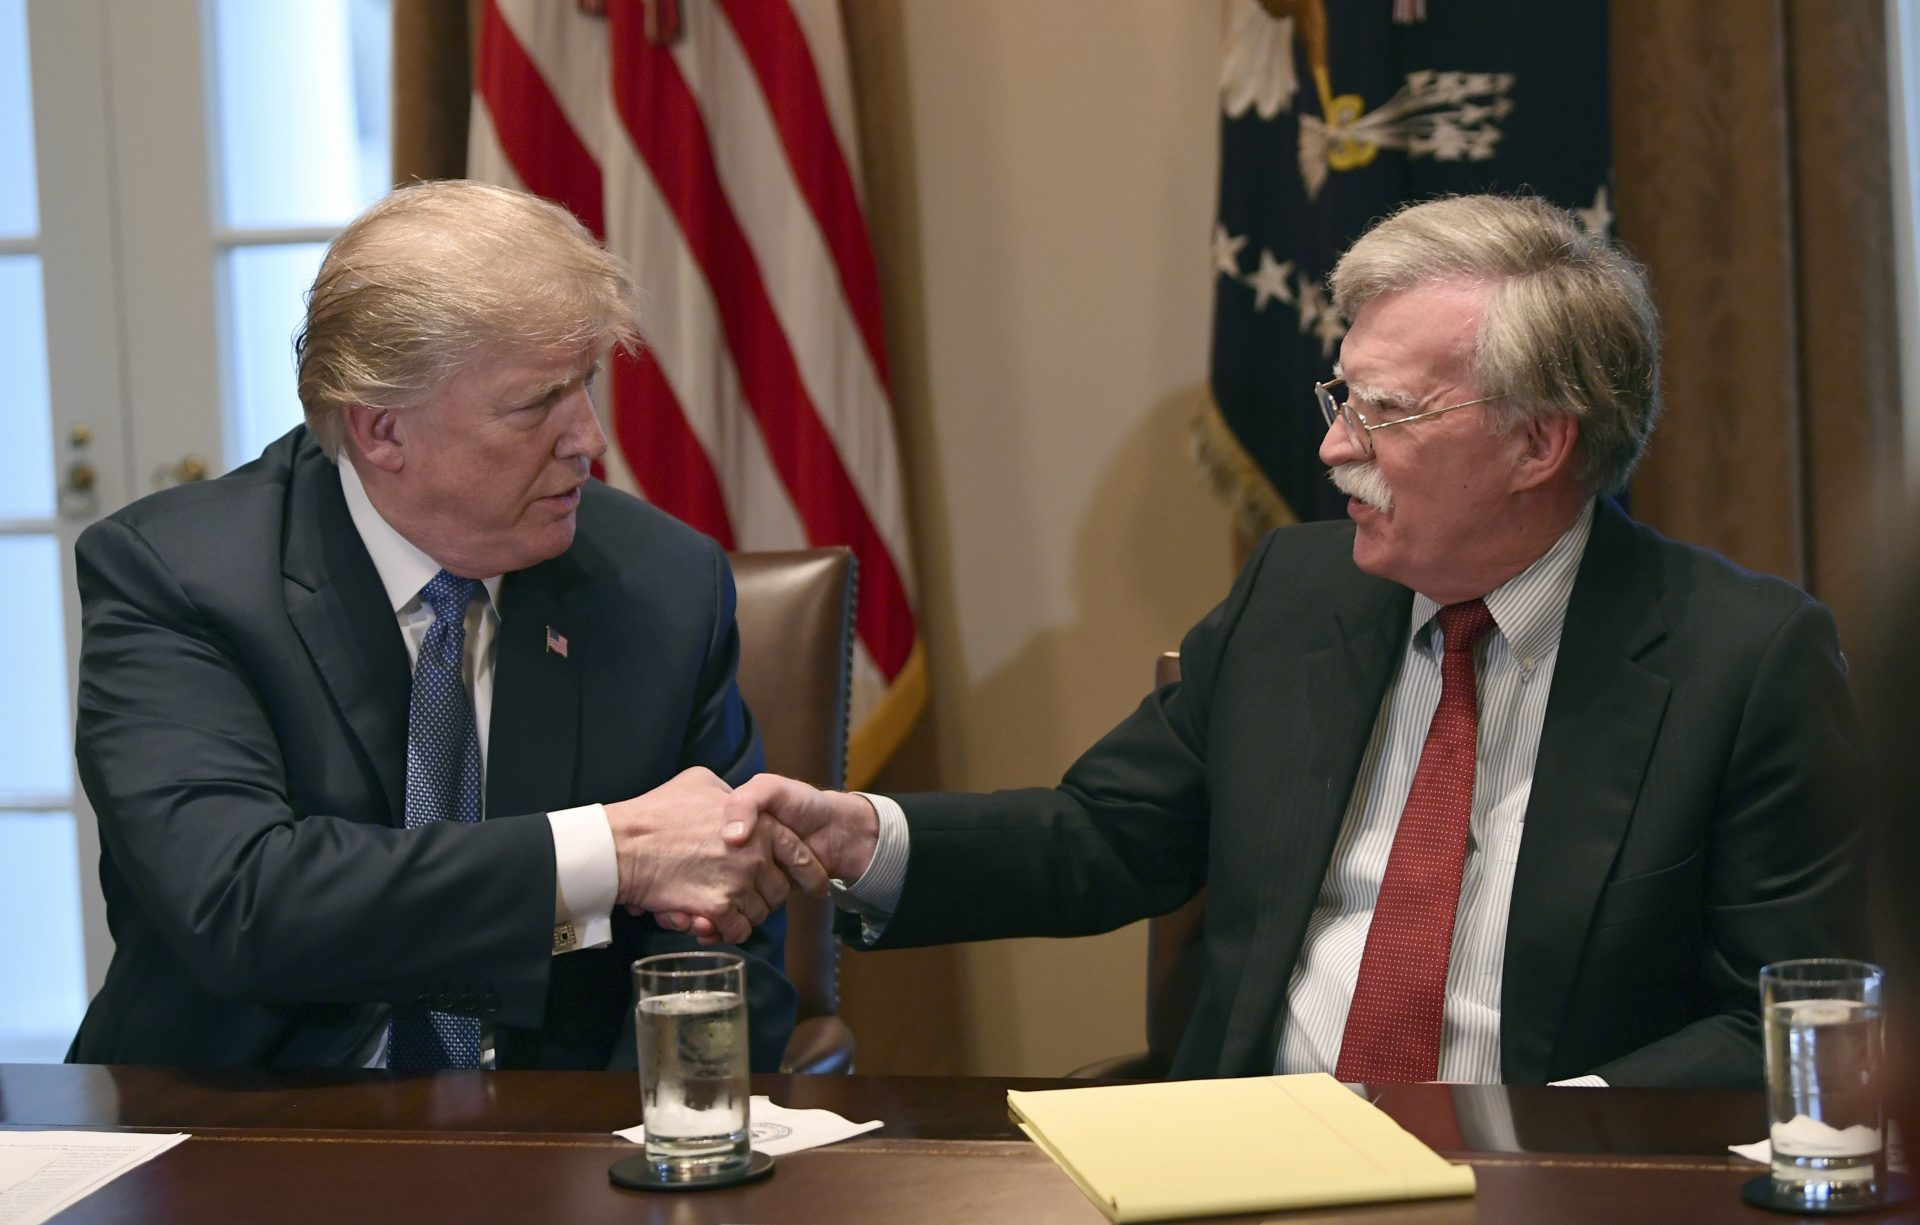 In this April 9, 2018 file photo, President Donald Trump, left, shakes hands with national security adviser John Bolton in the Cabinet Room of the White House in Washington at the start of a meeting with military leaders. Trump has fired national security adviser John Bolton.